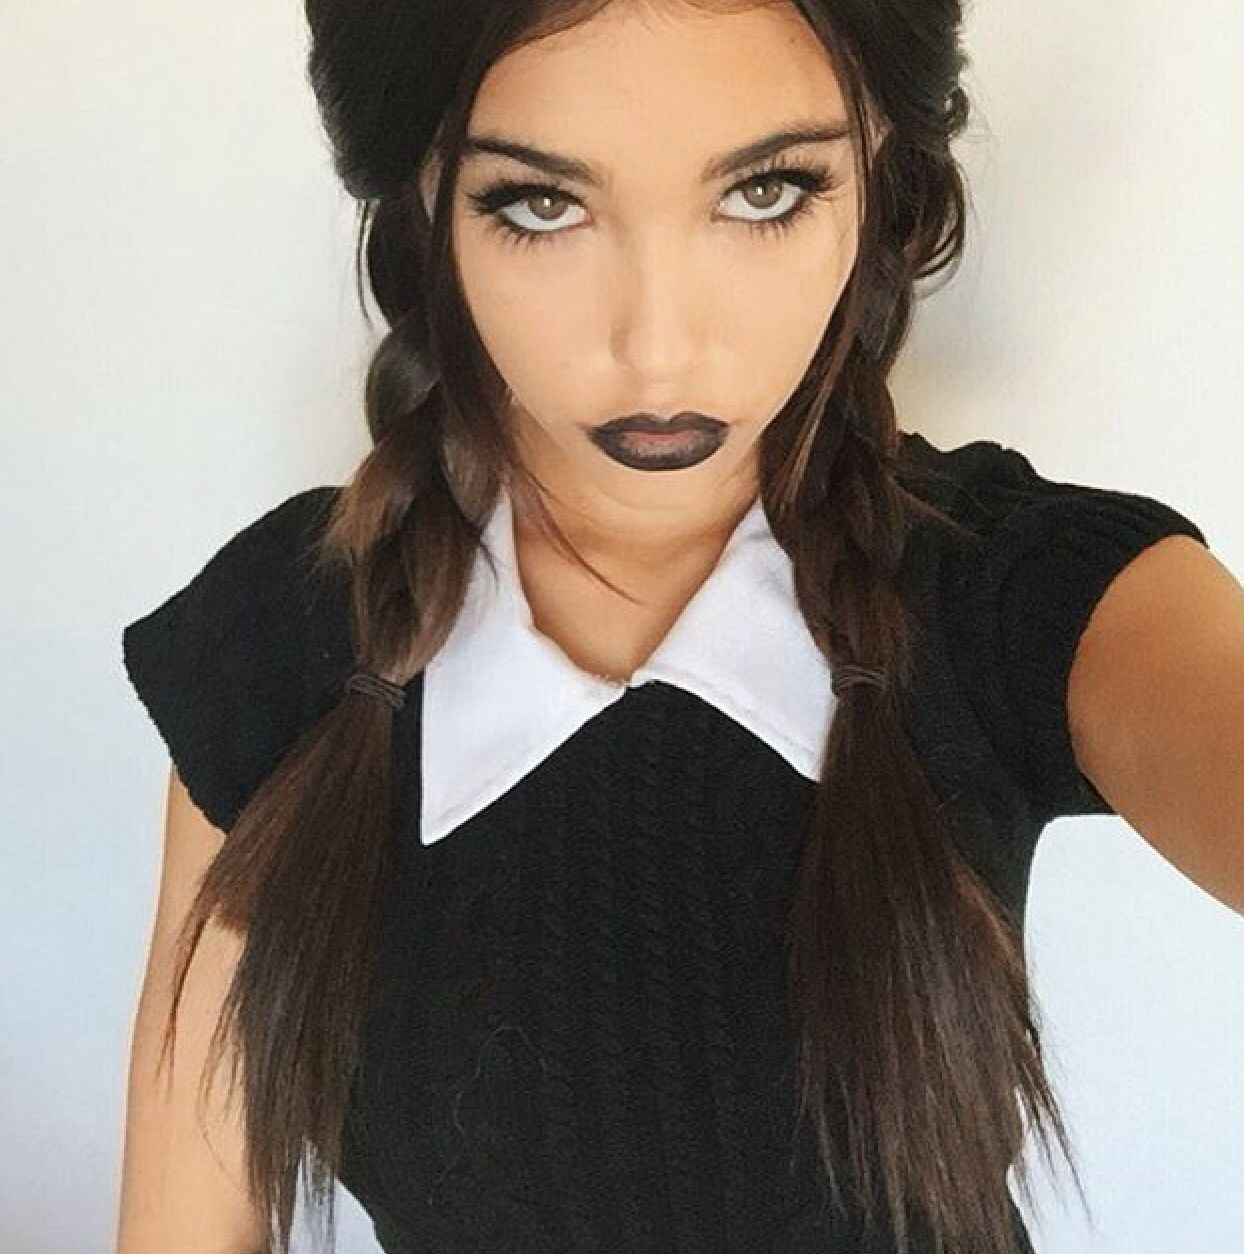 Madison Wednesday costume, Wednesday addams costume